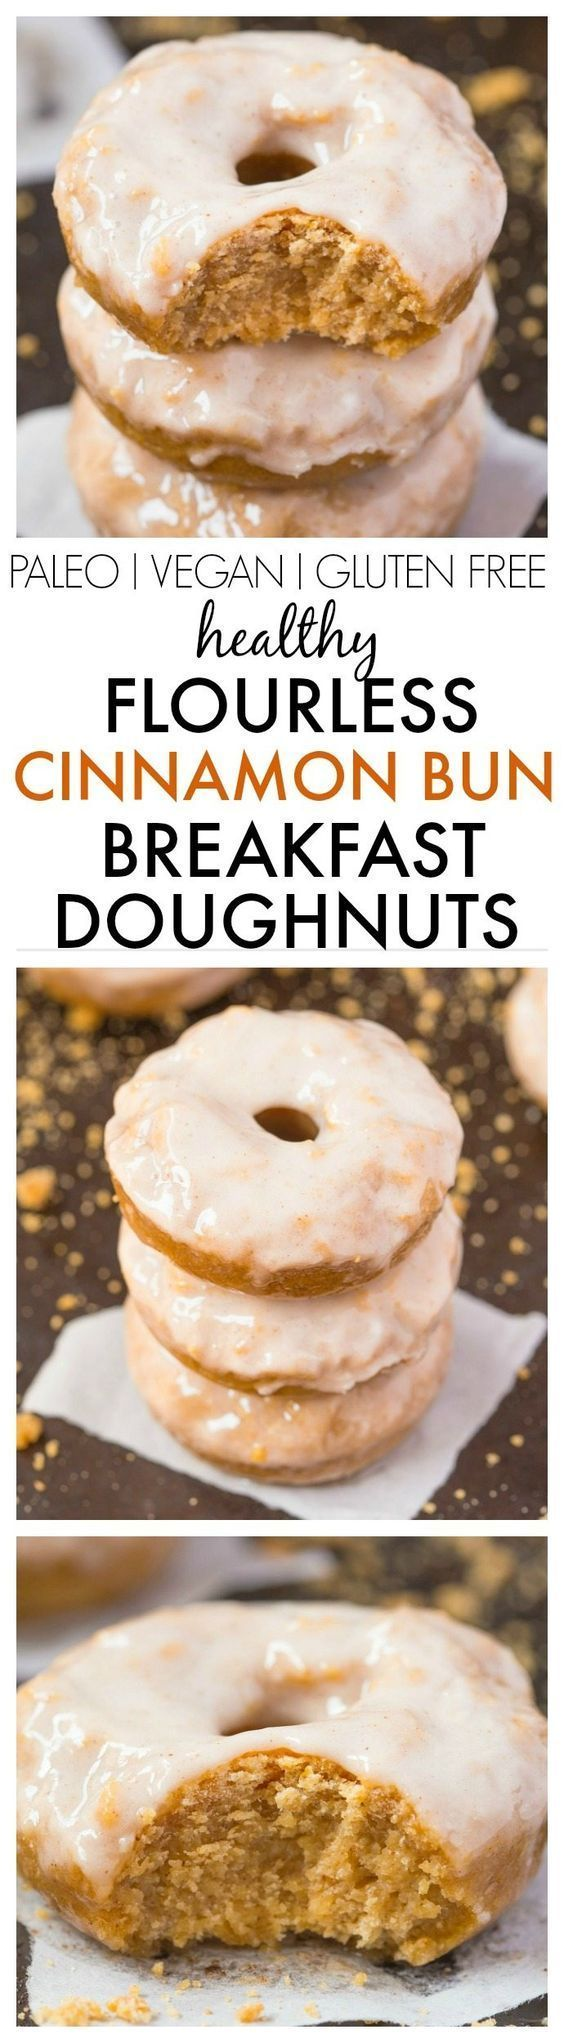 Healthy Flourless Cinnamon Bun Breakfast Doughnuts- Fluffy and satisfying doughnuts made with NO butter, NO oil, NO flour and NO sugar yet tastes amazing- The Glaze is protein packed too! {vegan, gluten free, paleo recipe}- thebigmansworld.com